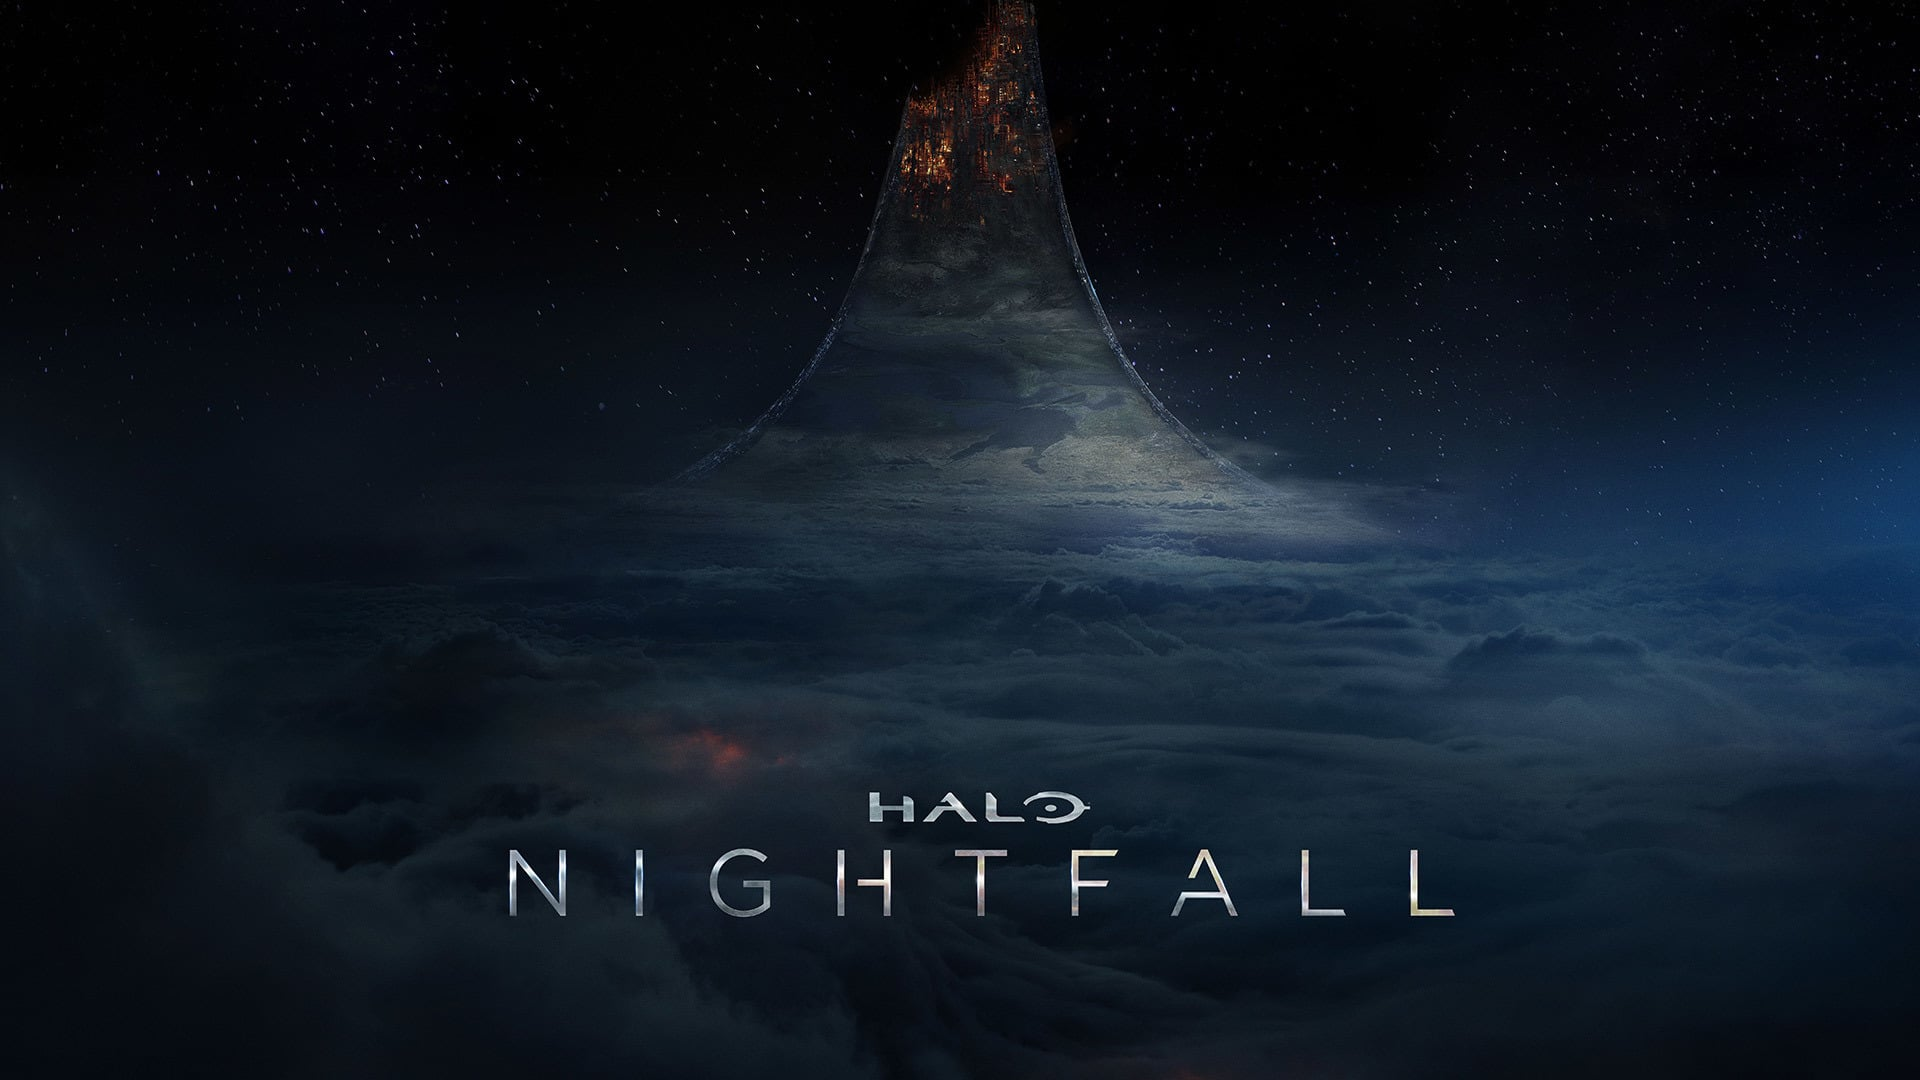 Regarder Halo: Nightfall en streaming gratuit